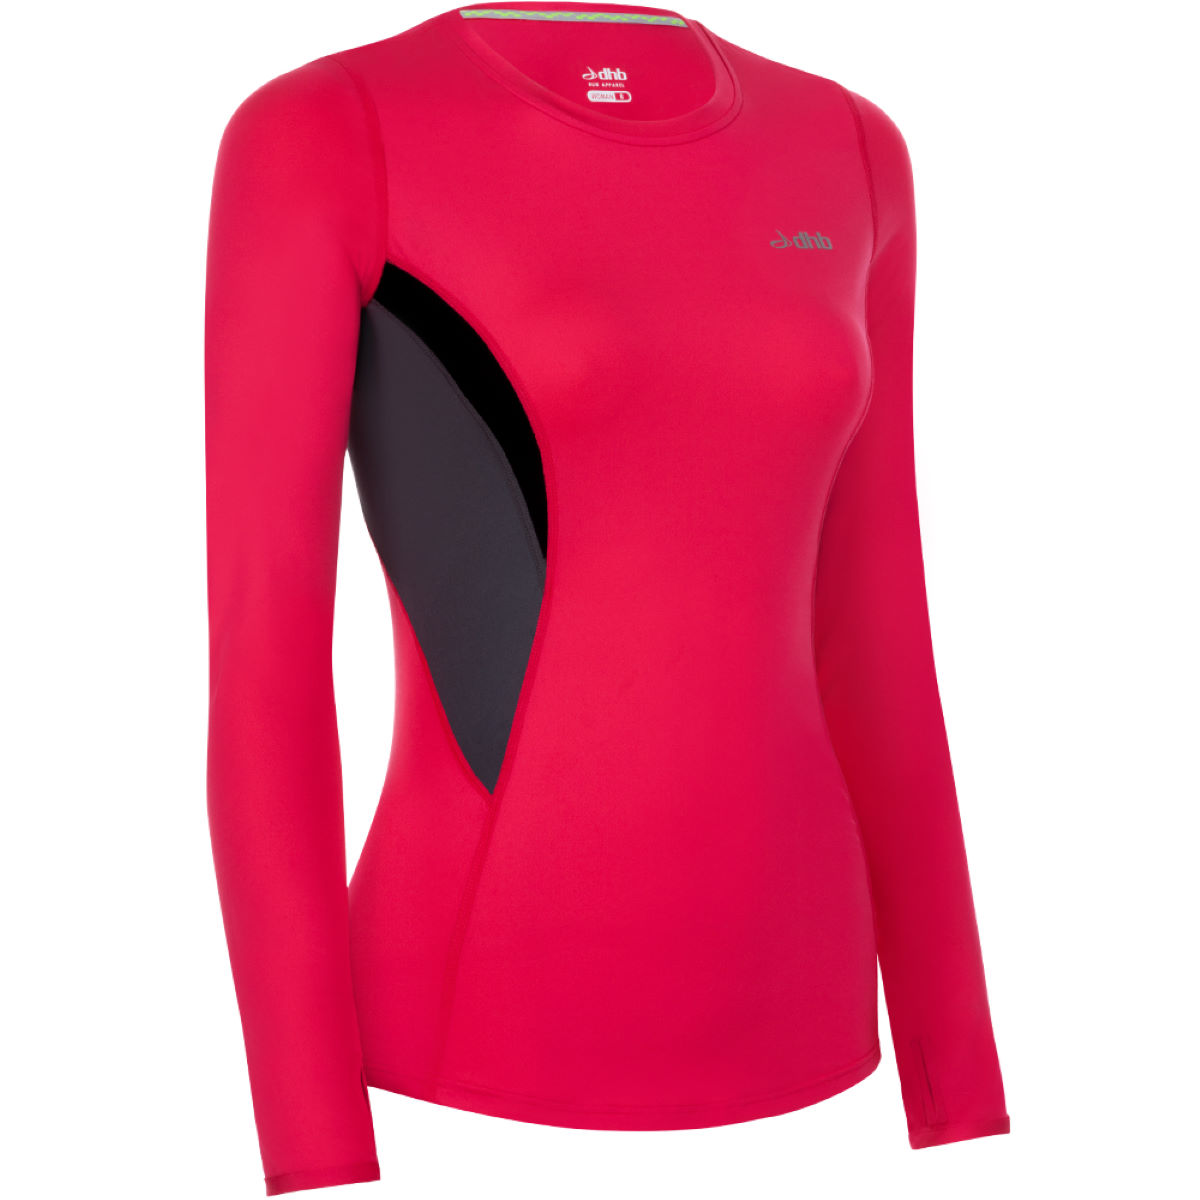 dhb Women's Zelos Long Sleeve Run Top